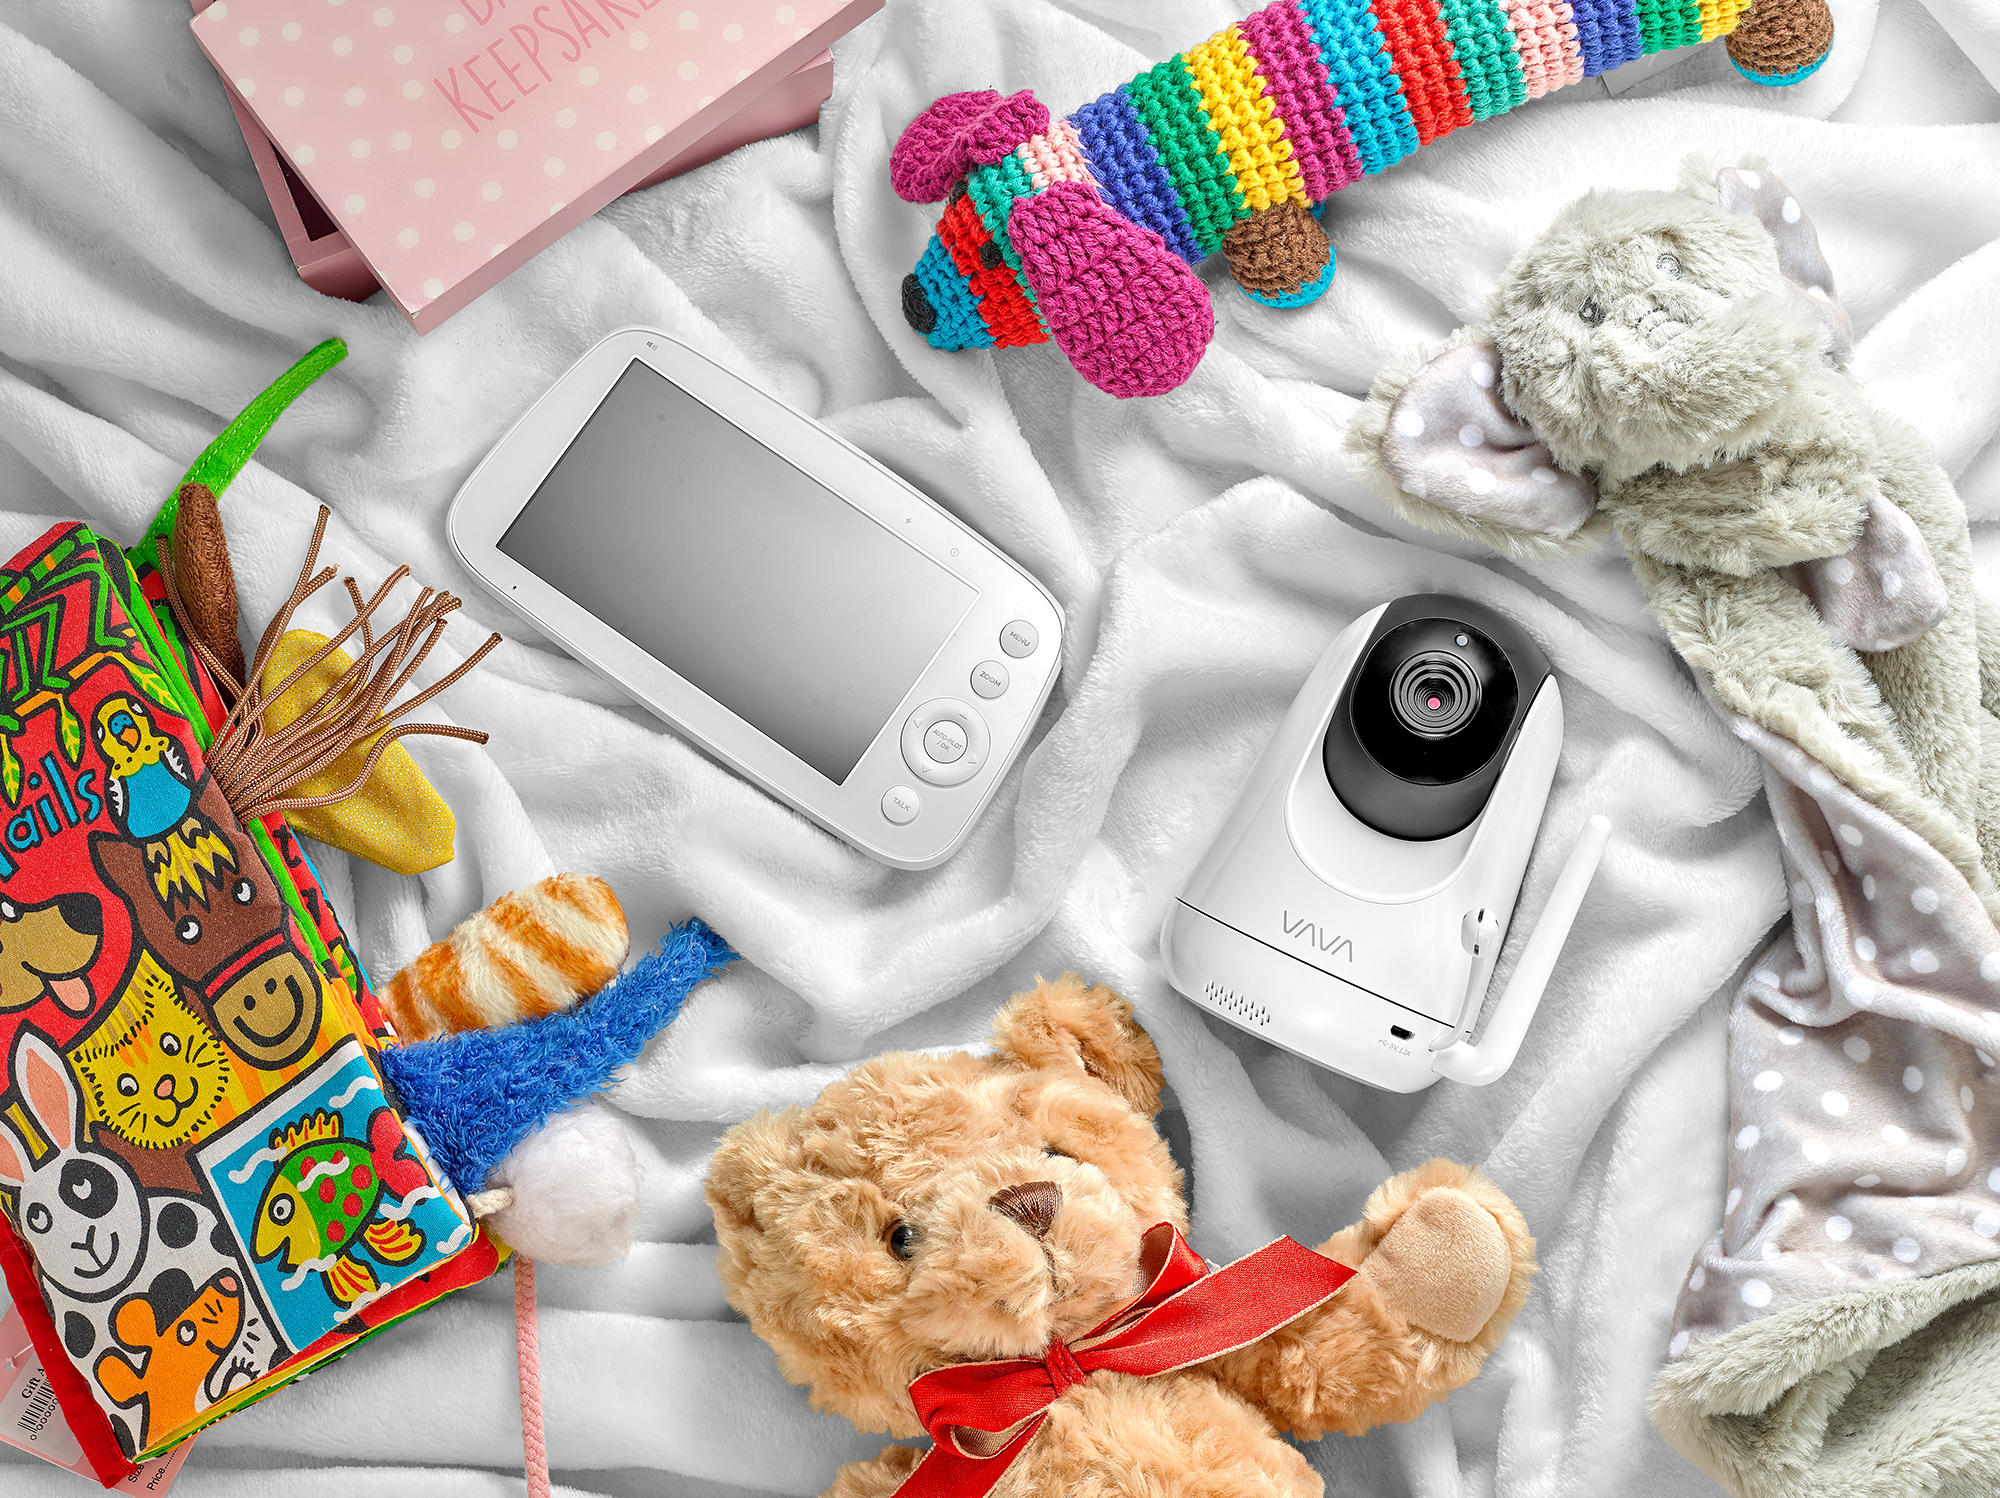 lifestyle product photography. Baby monitor and camera surrounded by lifestyle baby products on soft blanket. Created in London still life studio by chris howlett